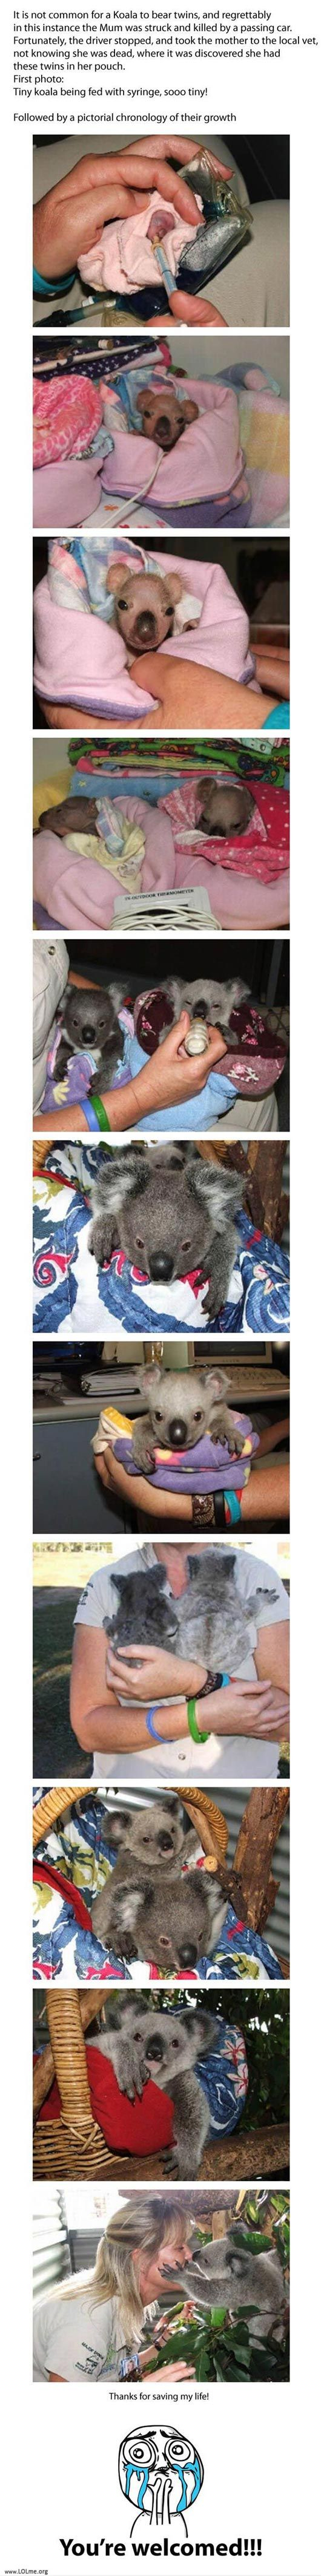 Amazing story about baby koala's life in pictures